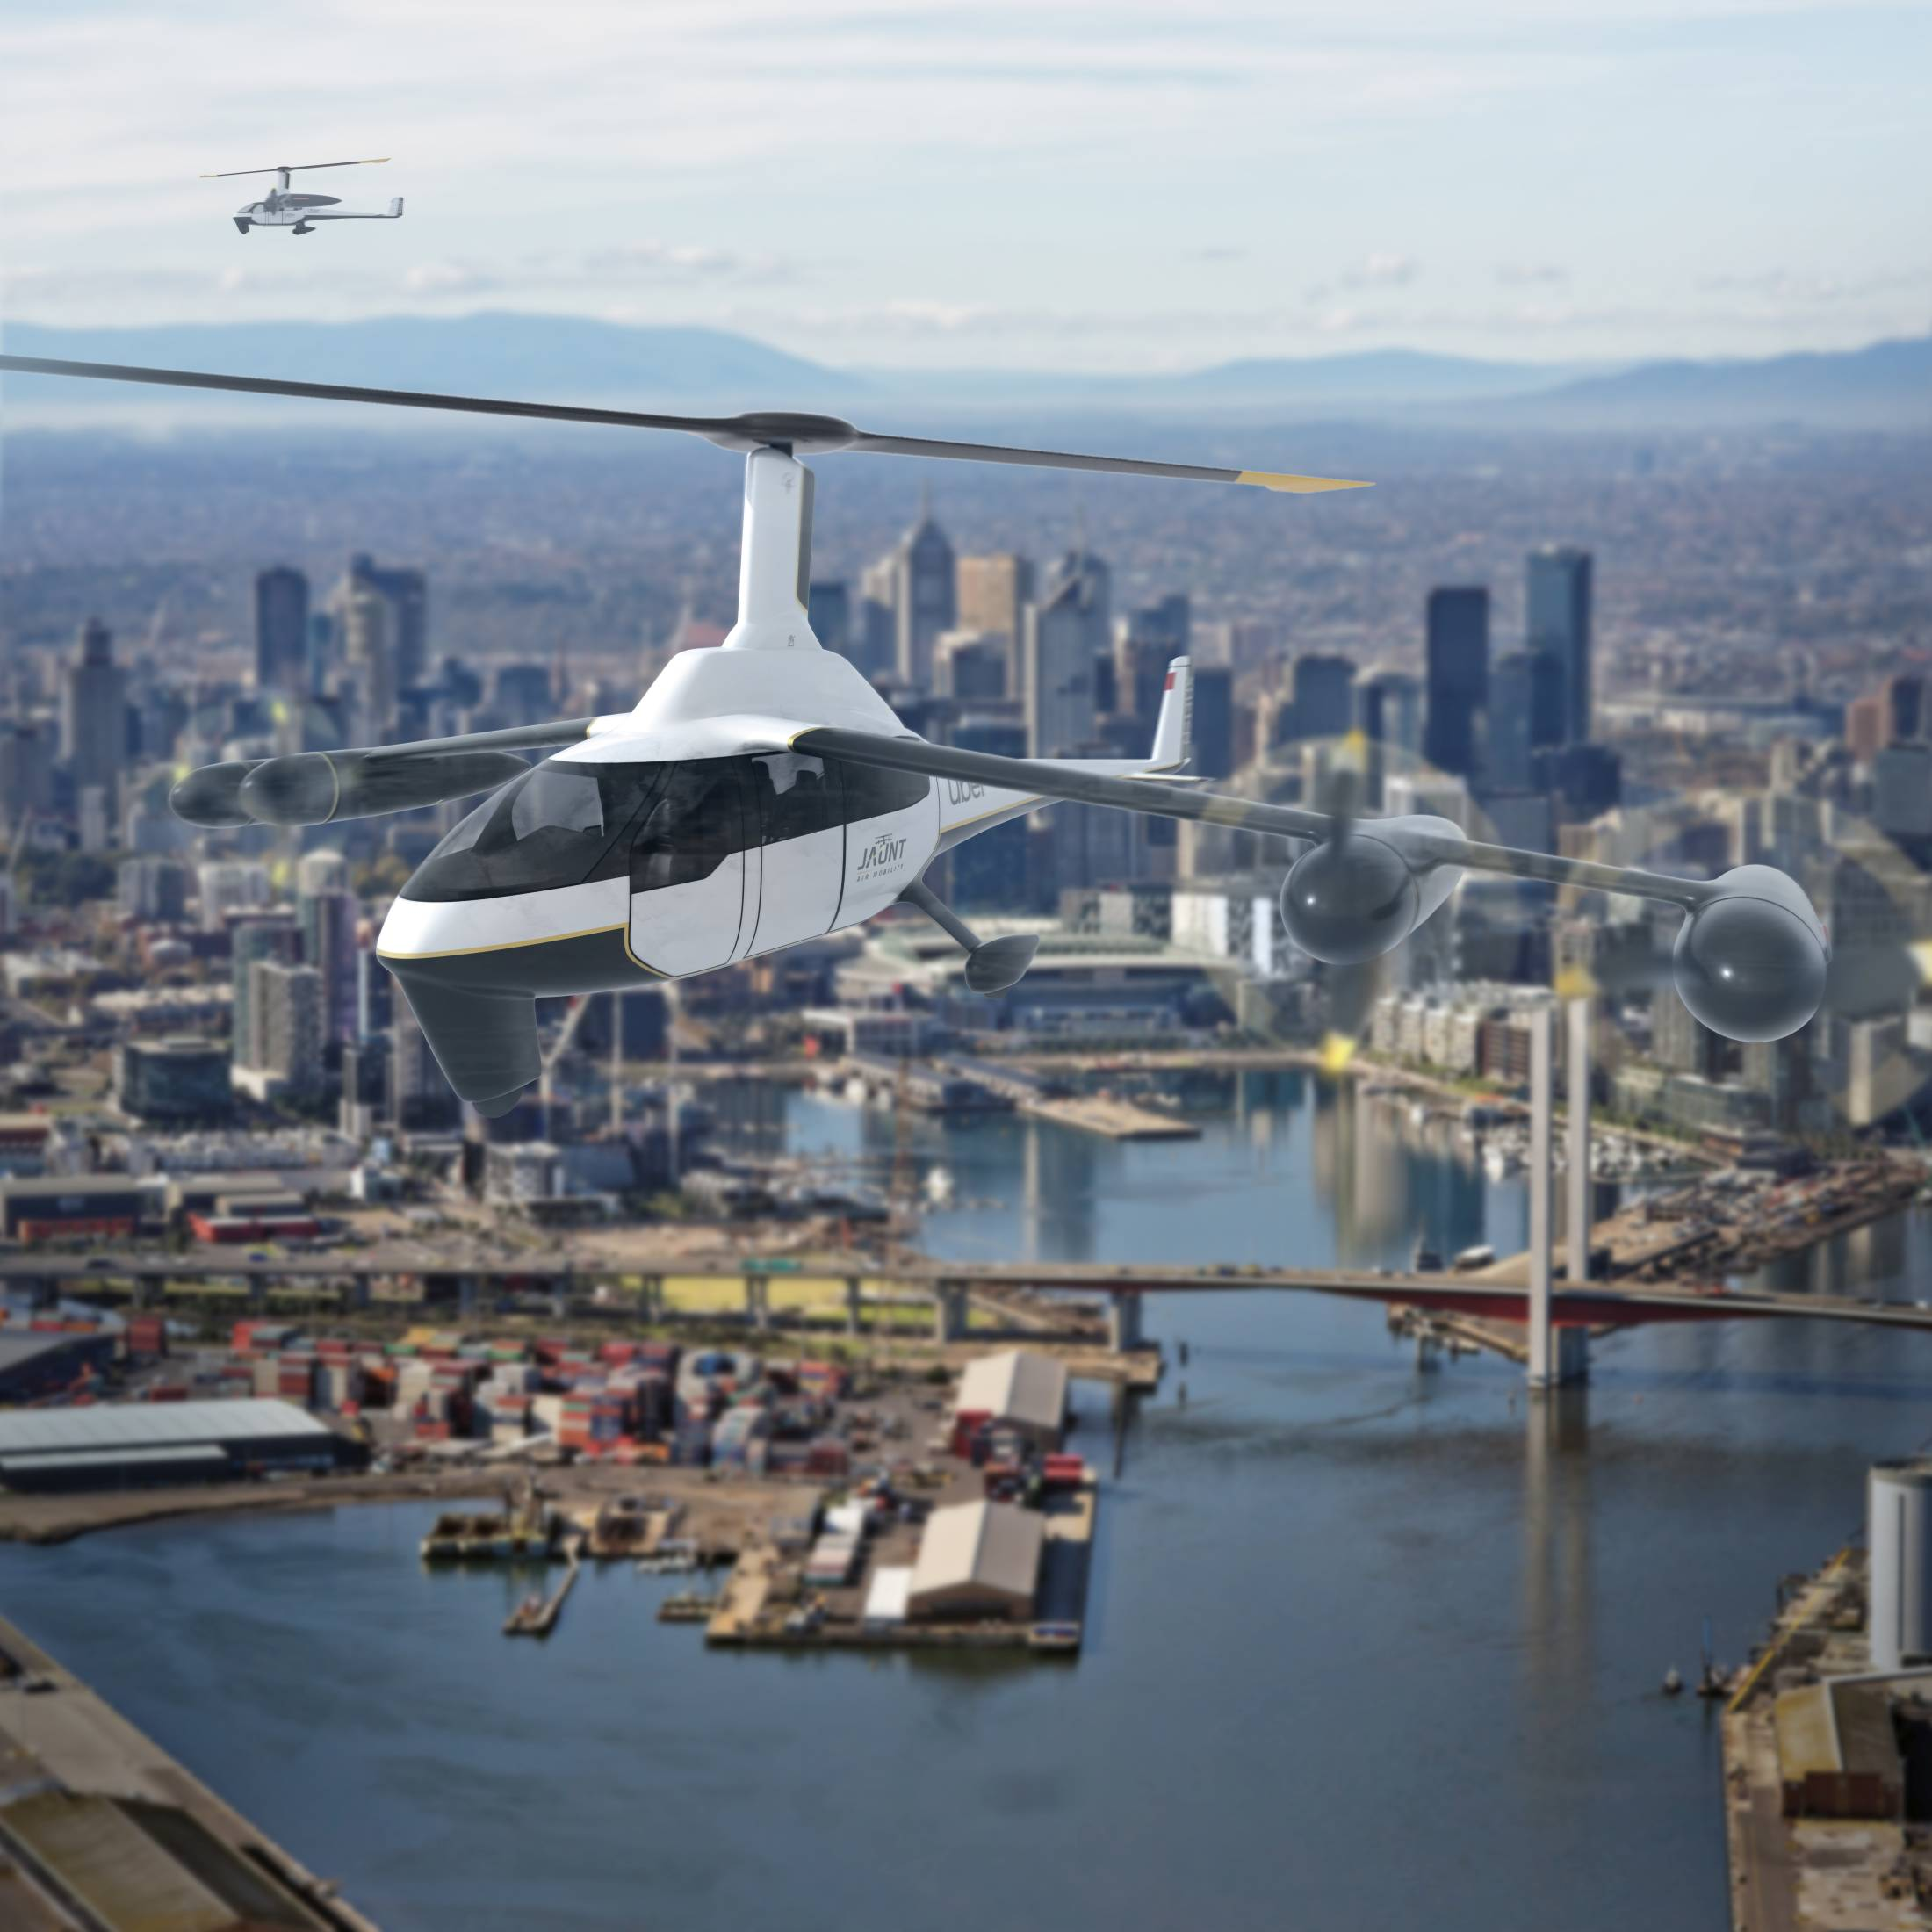 Jaunt Air Mobility Uber Elevate Air Taxi